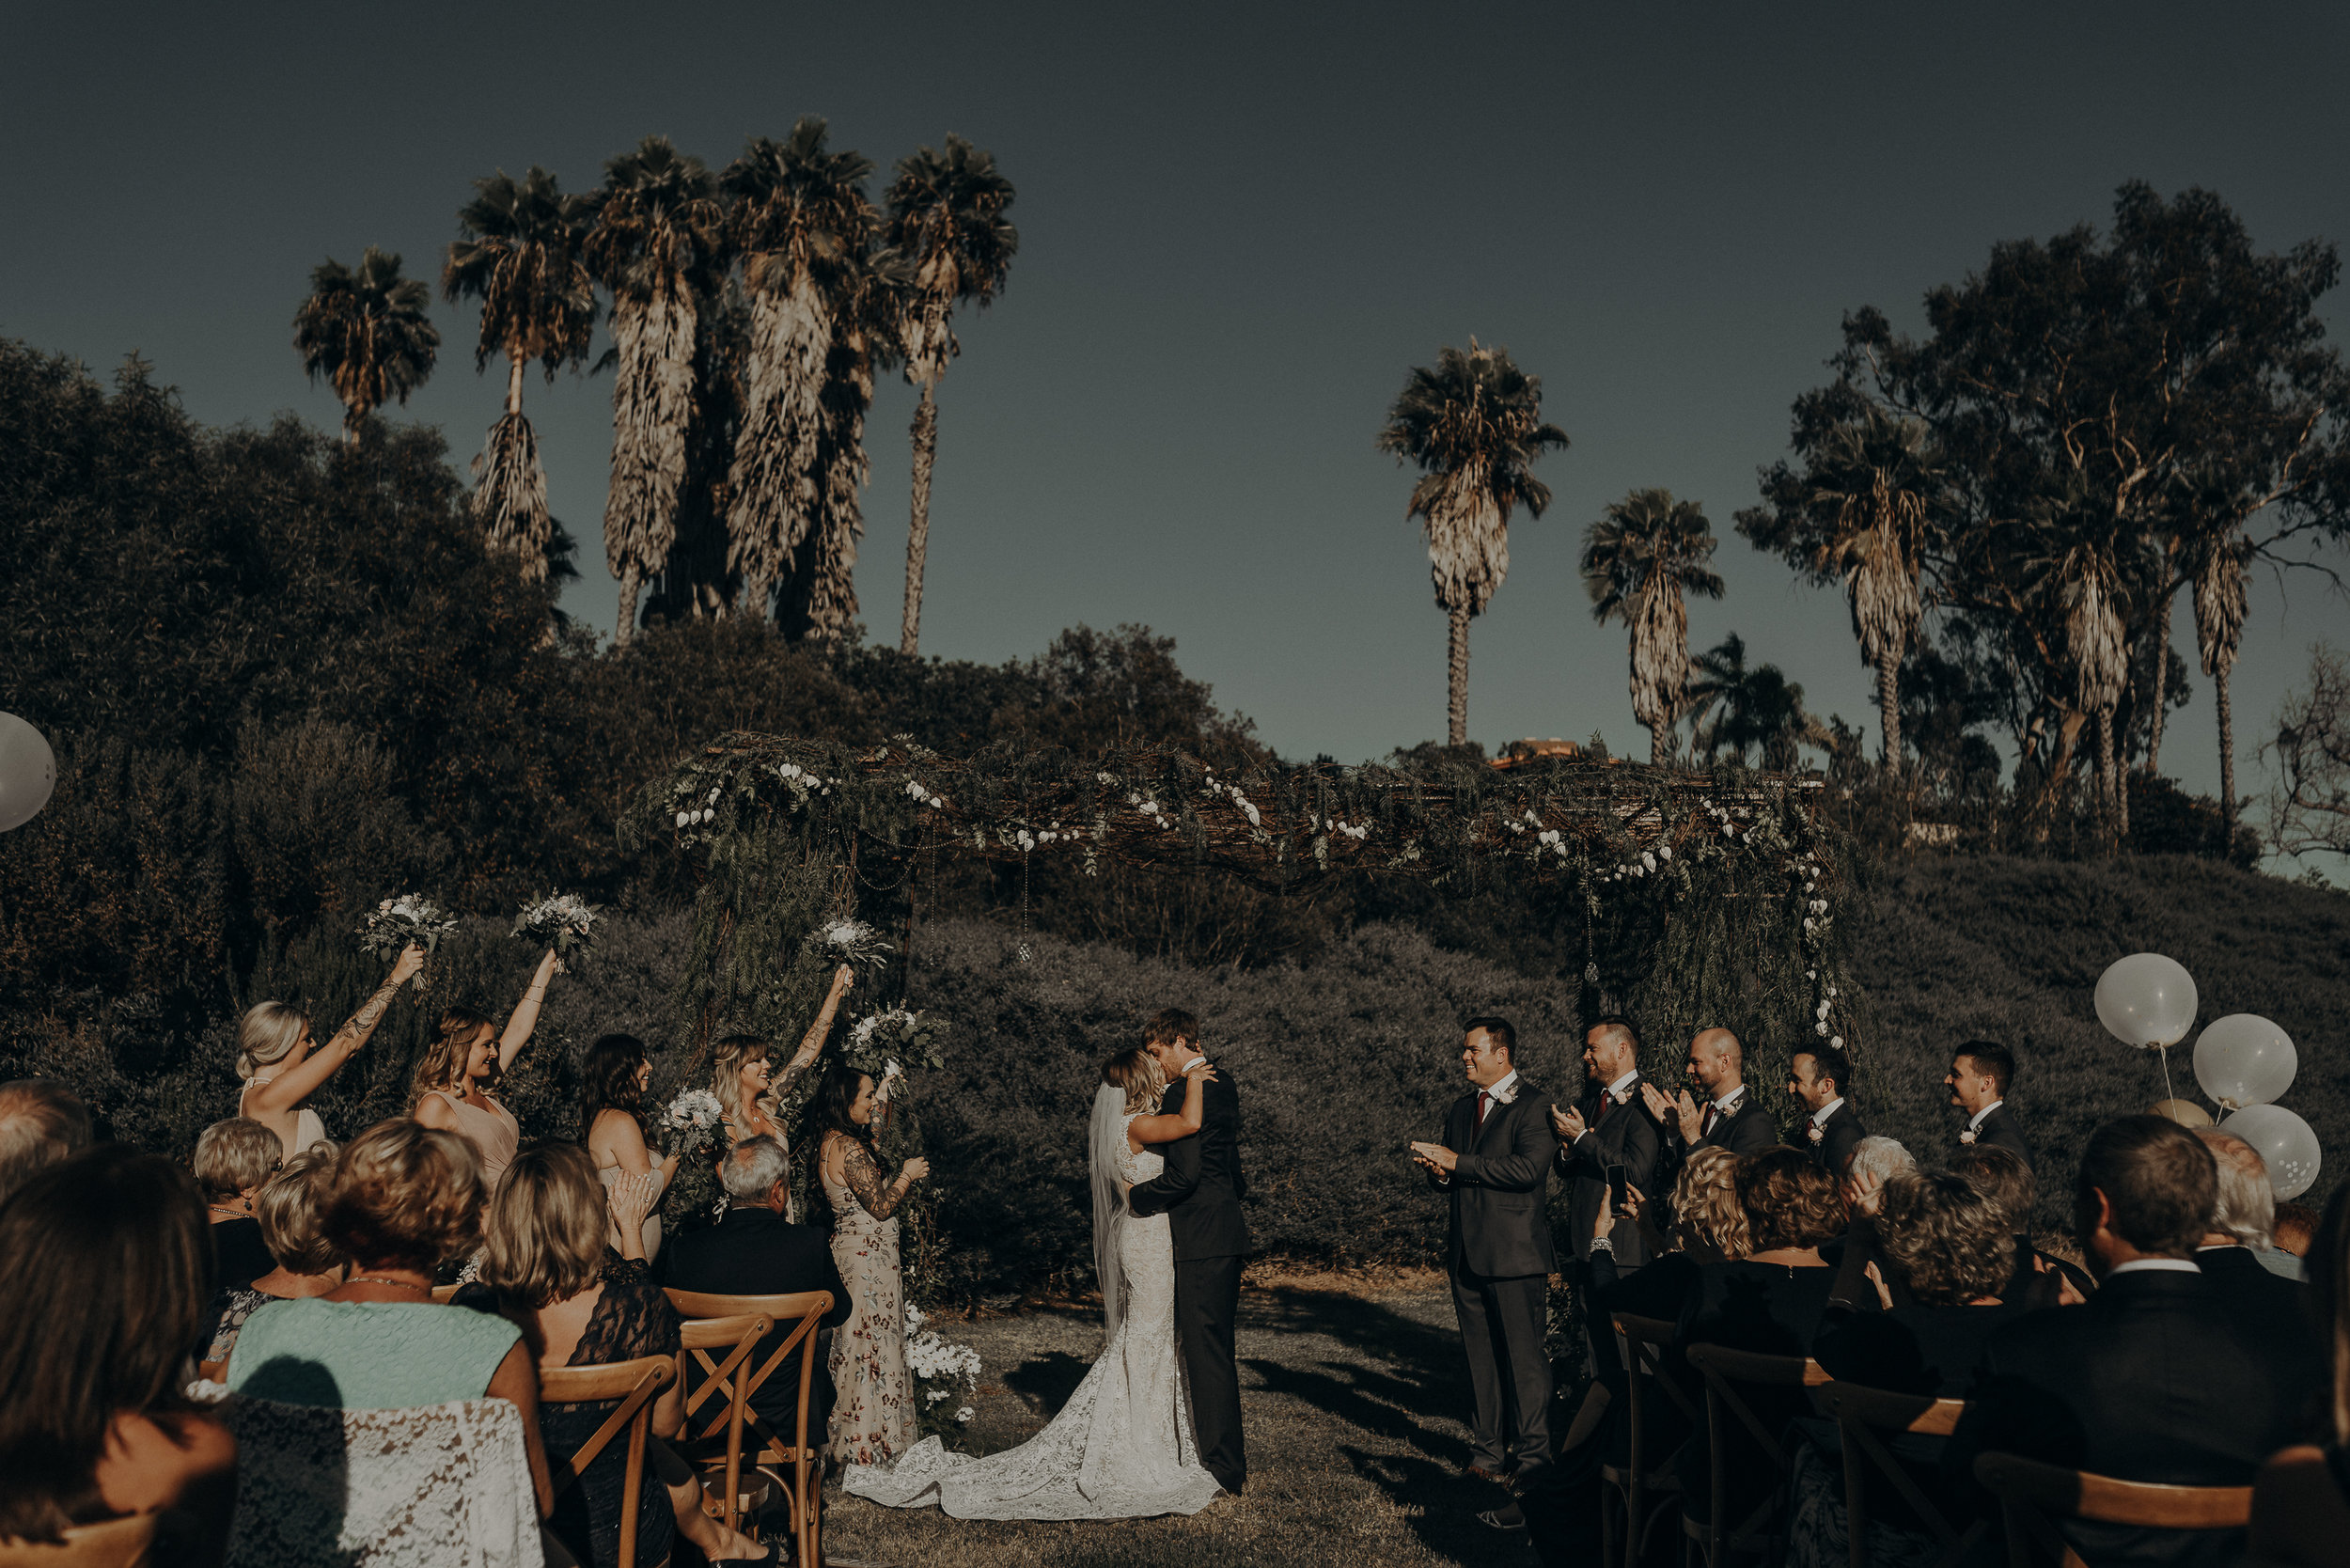 Isaiah + Taylor Photography - Los Angeles Wedding Photographer - Open Air Resort Wedding-61.jpg